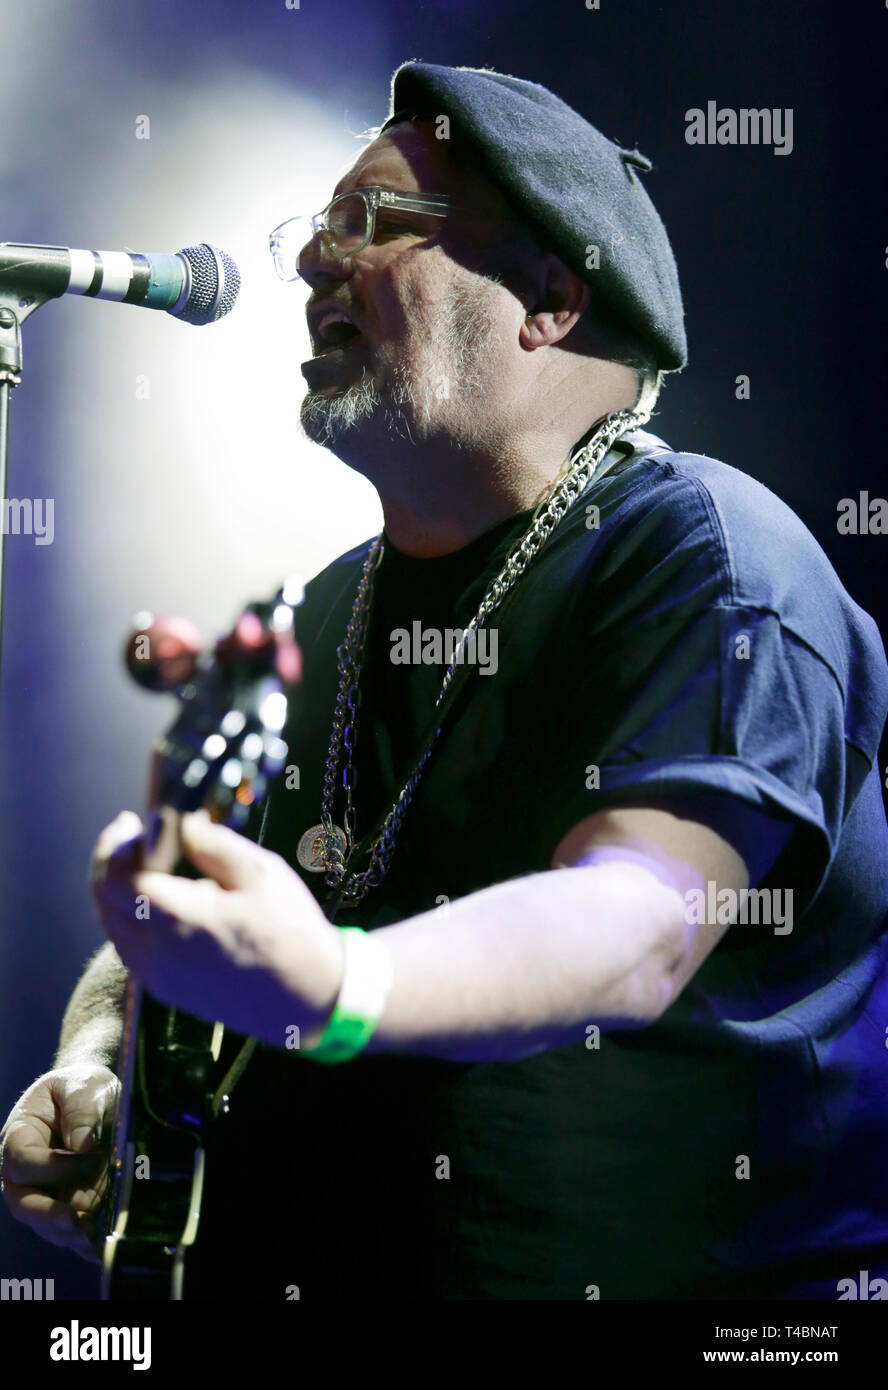 Special guest JC Carroll performs on stage during the Eddie and the Hot Rods show at o2 Academy Islington, London. - Stock Image